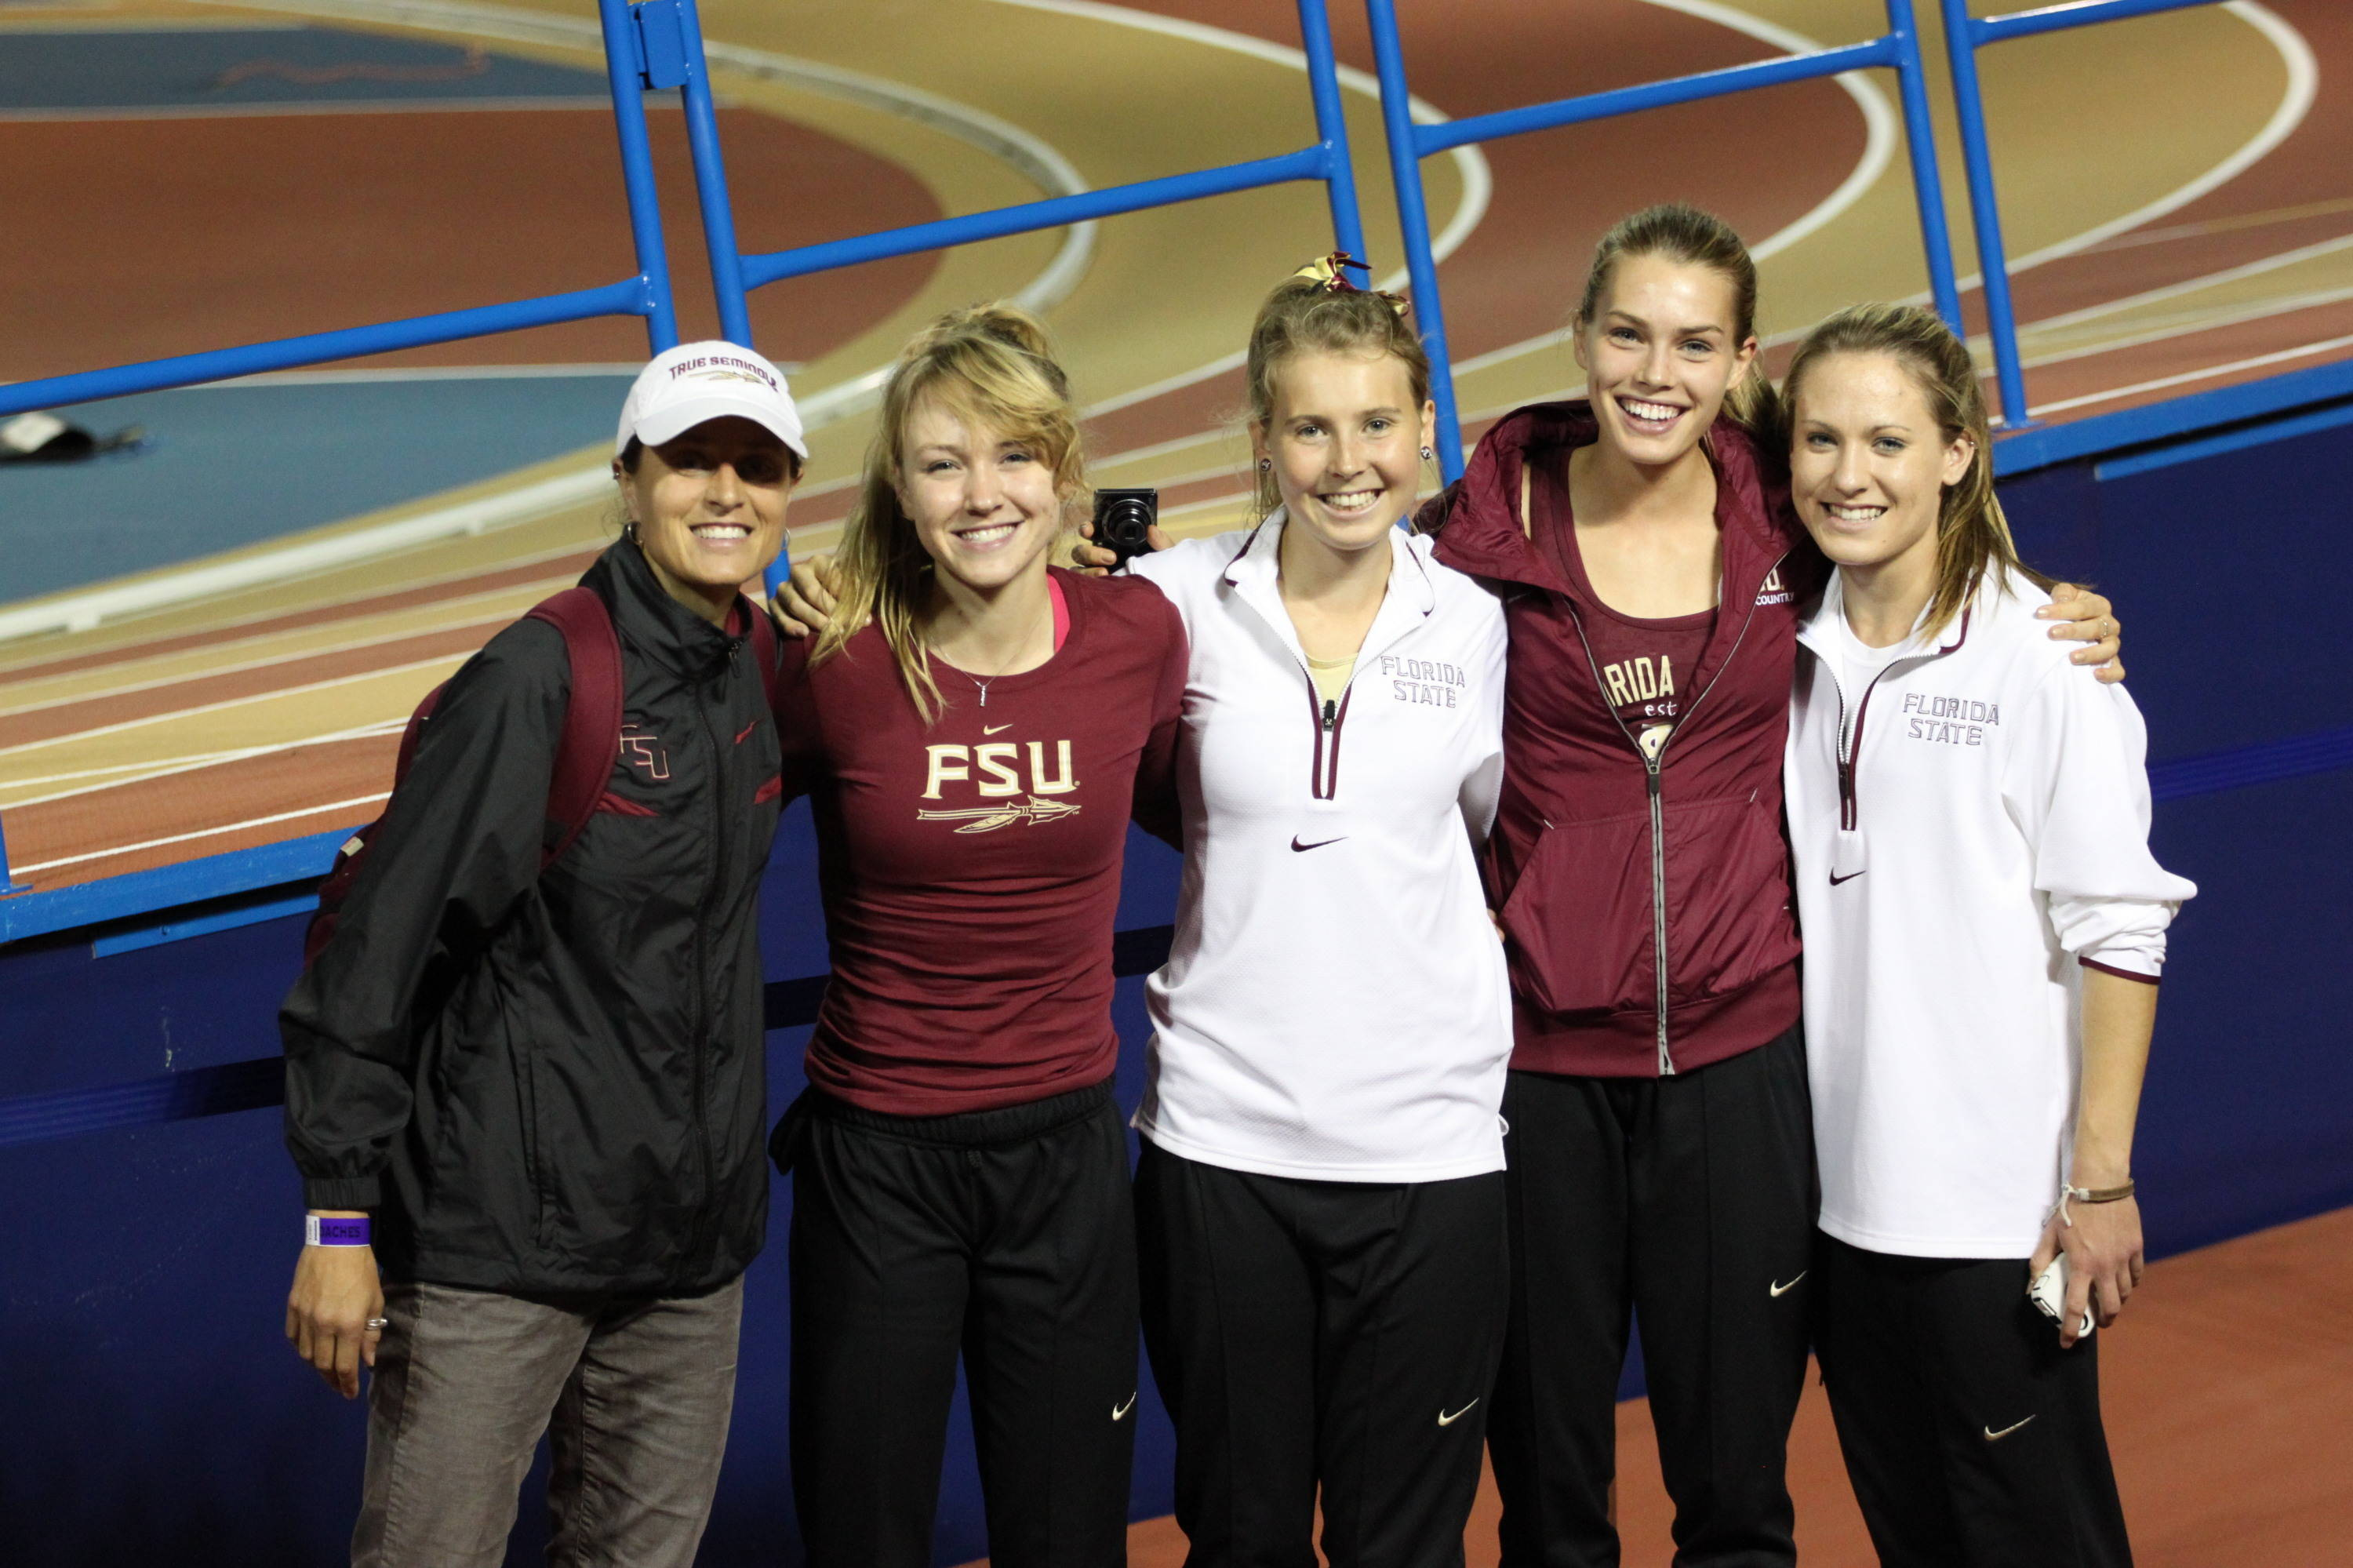 FSU women's distance coach Karen Harvey with freshmen Aubree Worden, Linden Hall, Colleen Quigley and Chelsi Woodruff after their strong showing in the mile run.